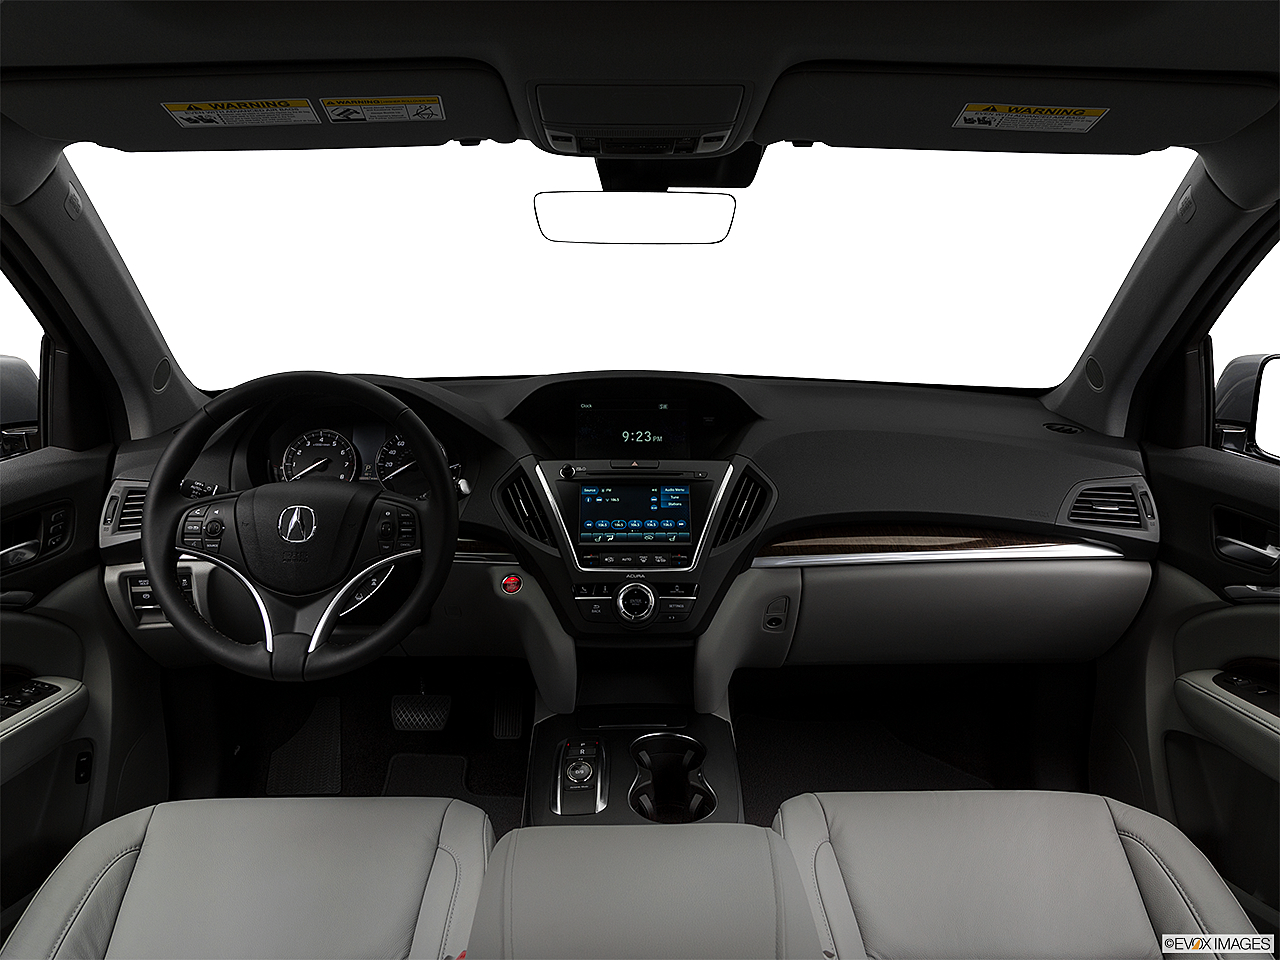 2019 Acura MDX, centered wide dash shot